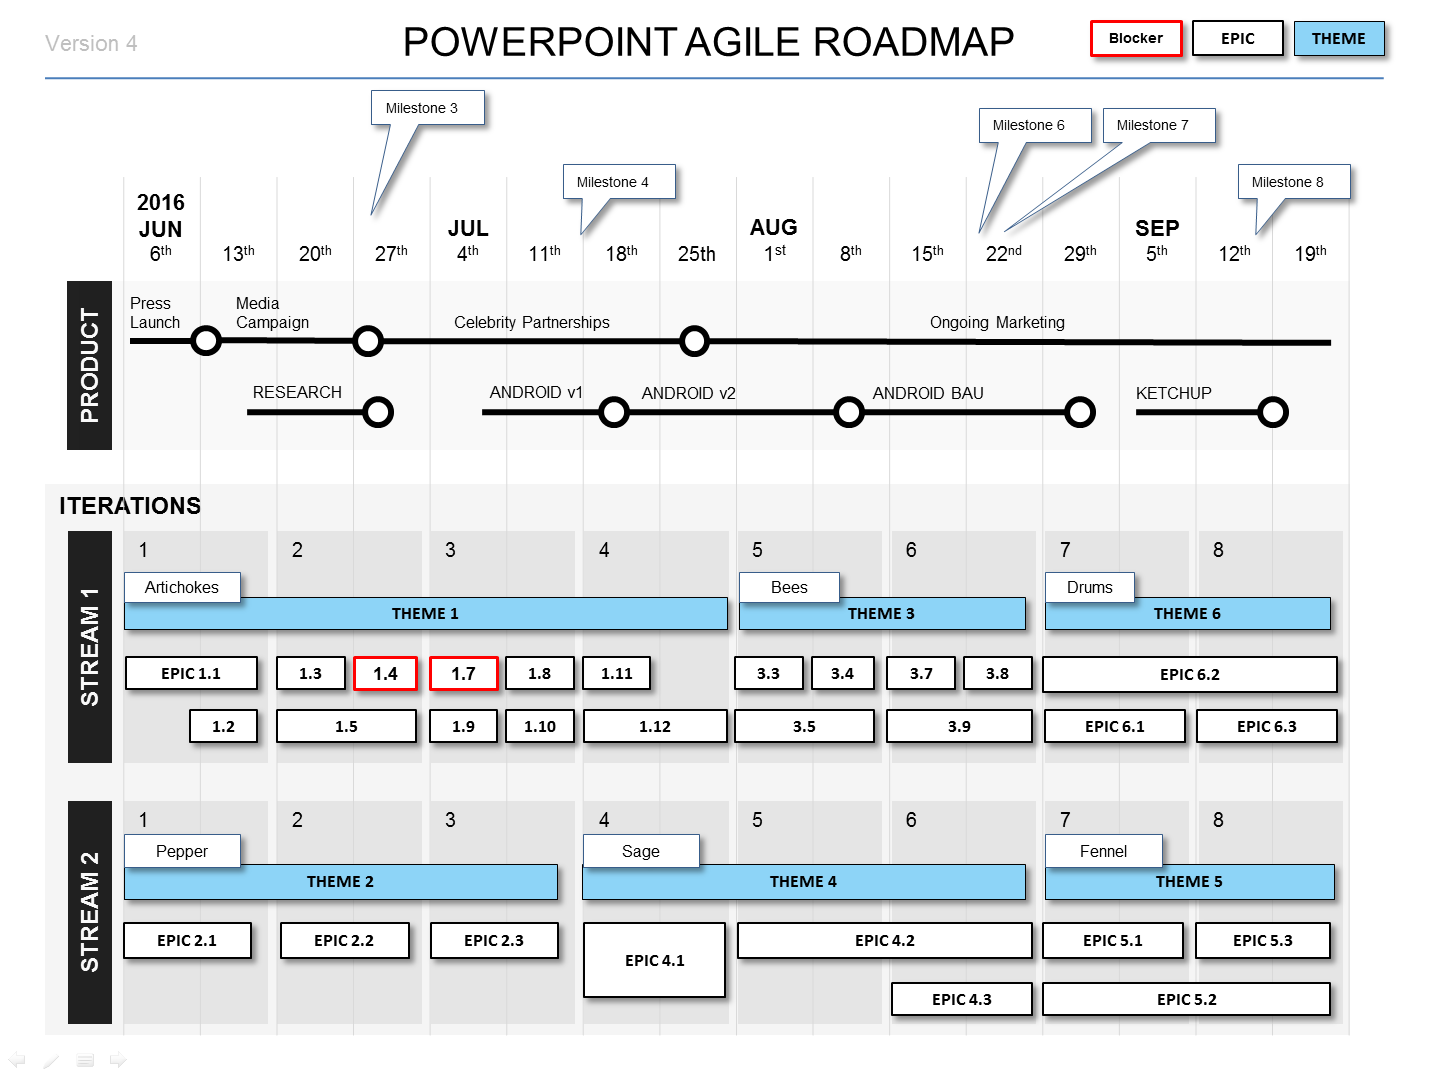 Powerpoint Agile Roadmap Template Ppt Pinterest Template And - Easy project management template